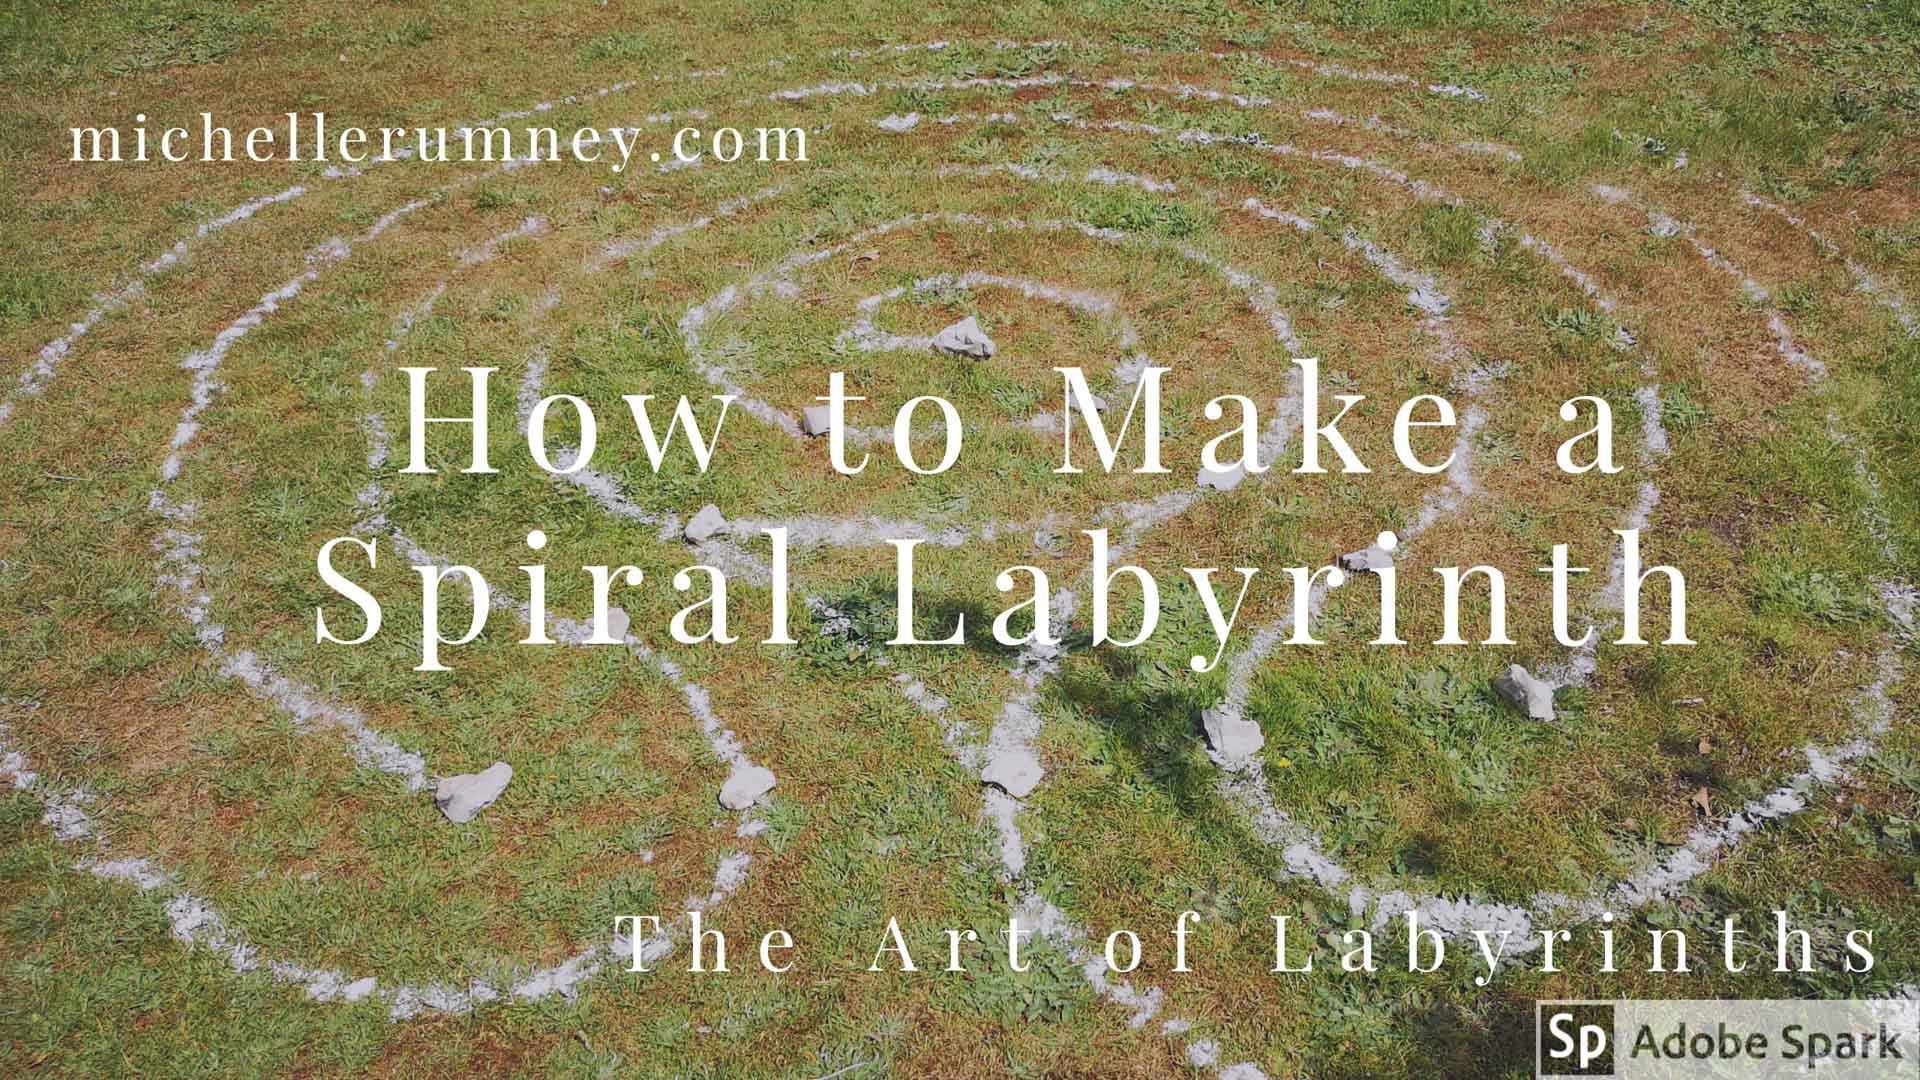 How to Make a Spiral Labyrinth outdoors